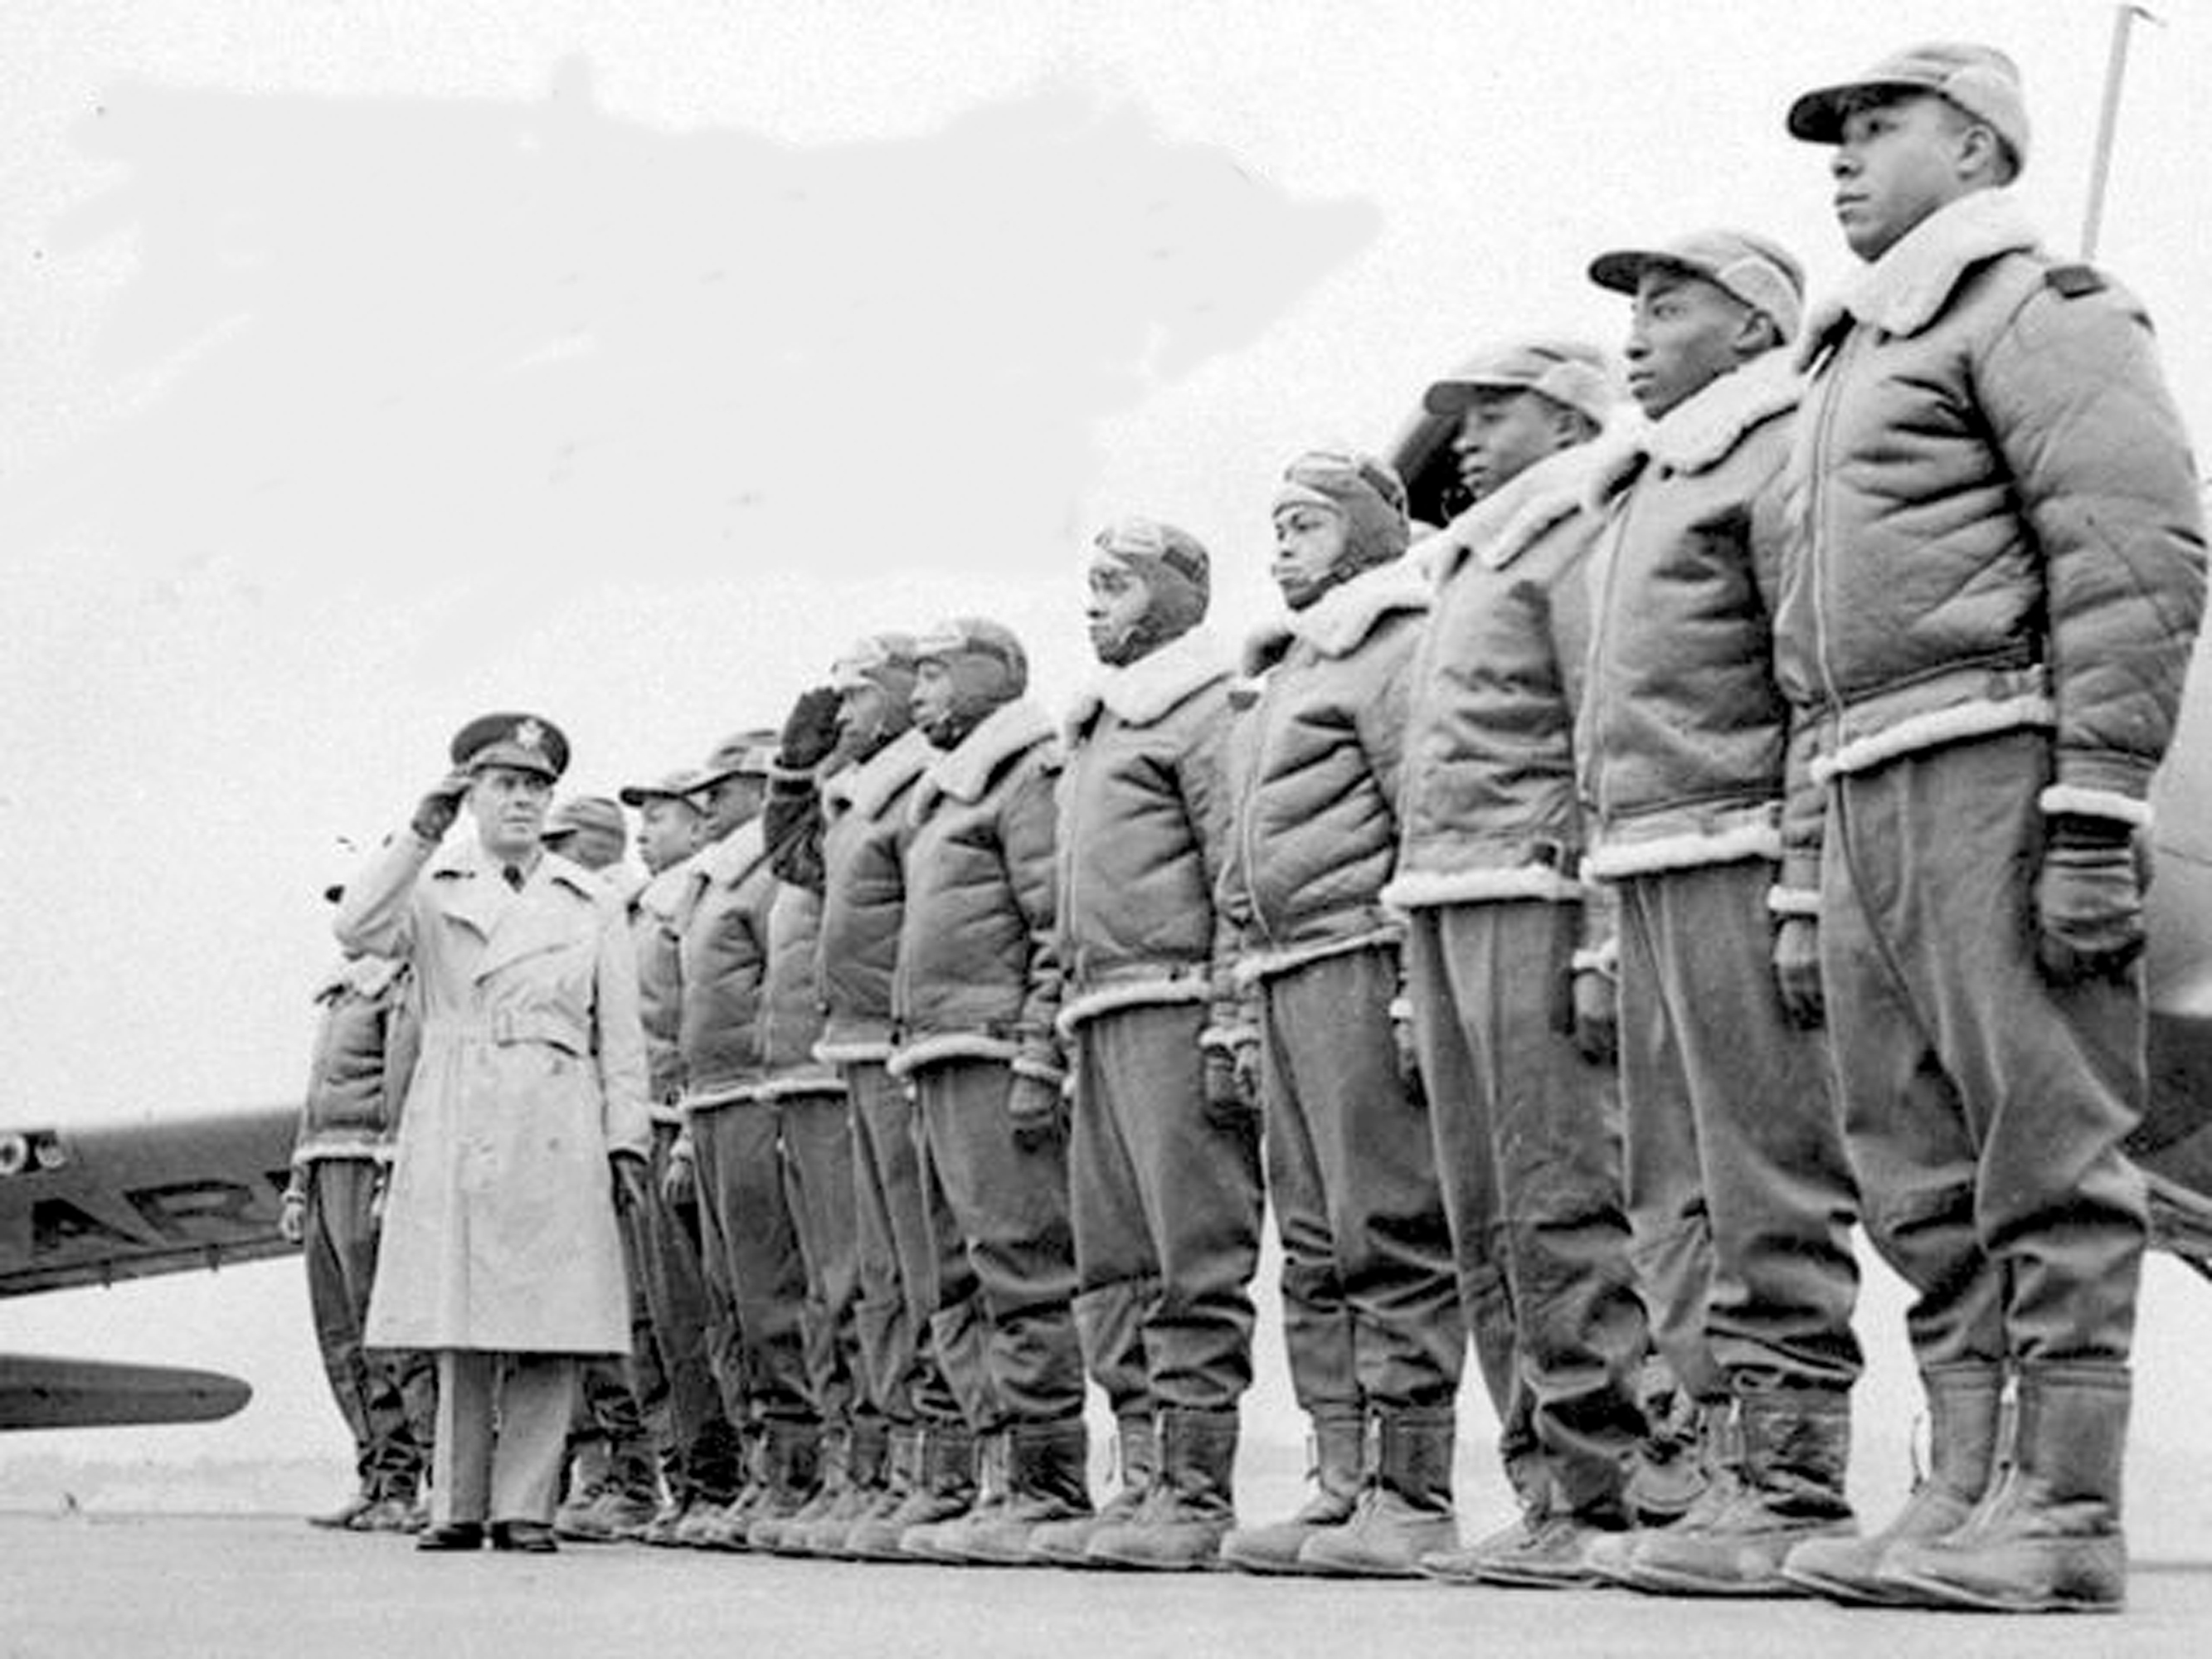 Tuskegee Airmen were founded 75 years ago March 22, 1941.